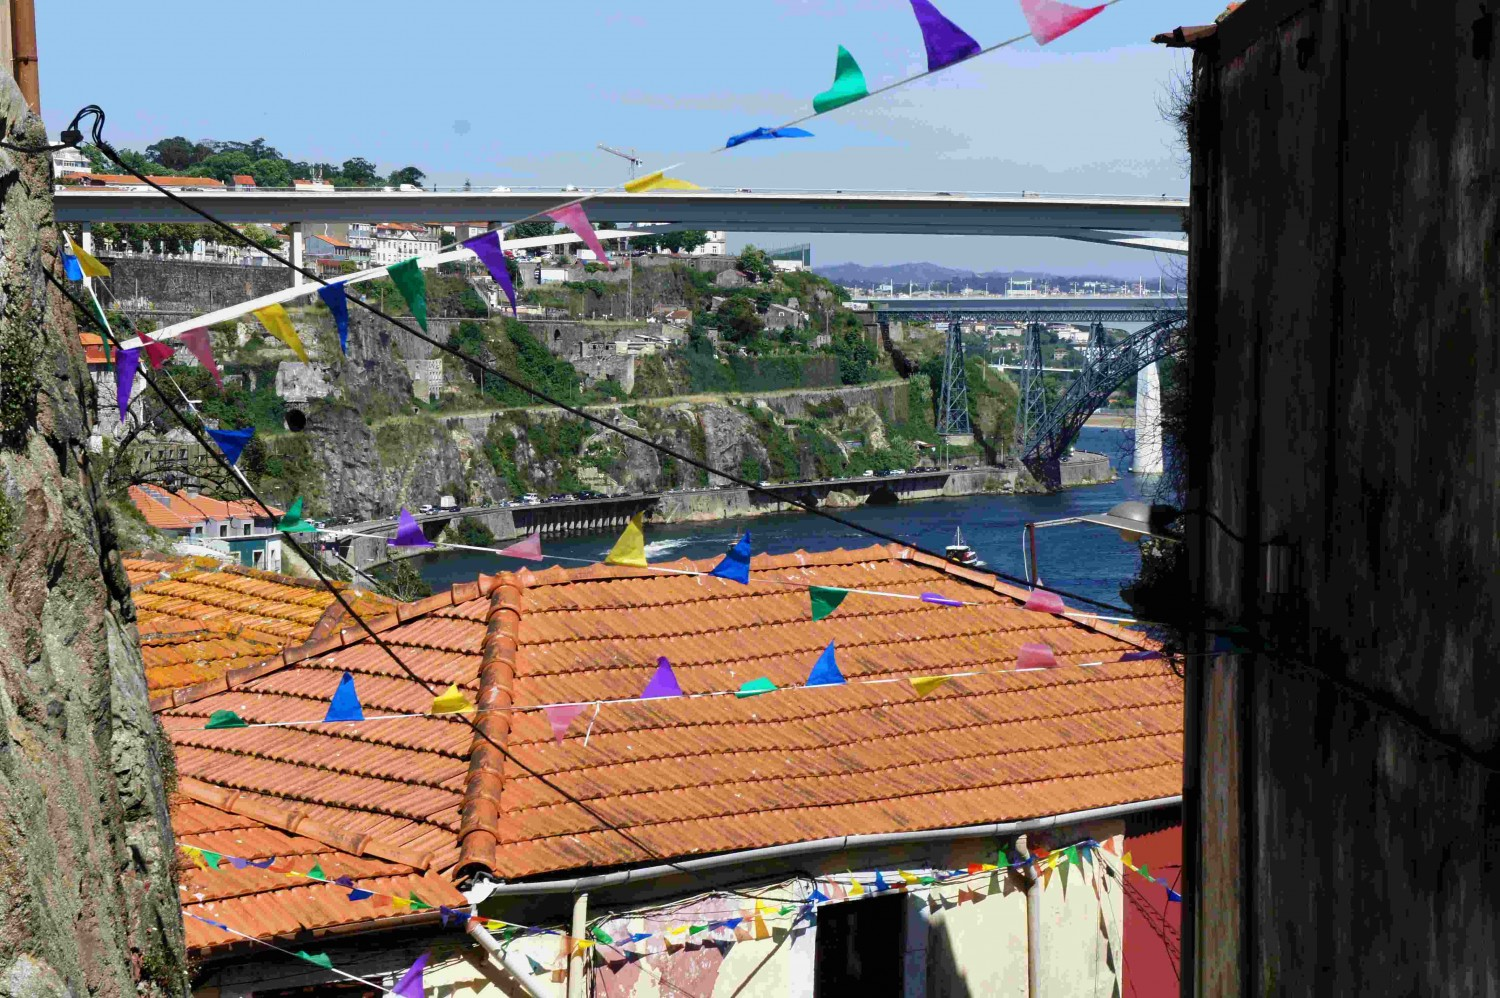 The bunting comes out for Porto's São João patron saint festivities